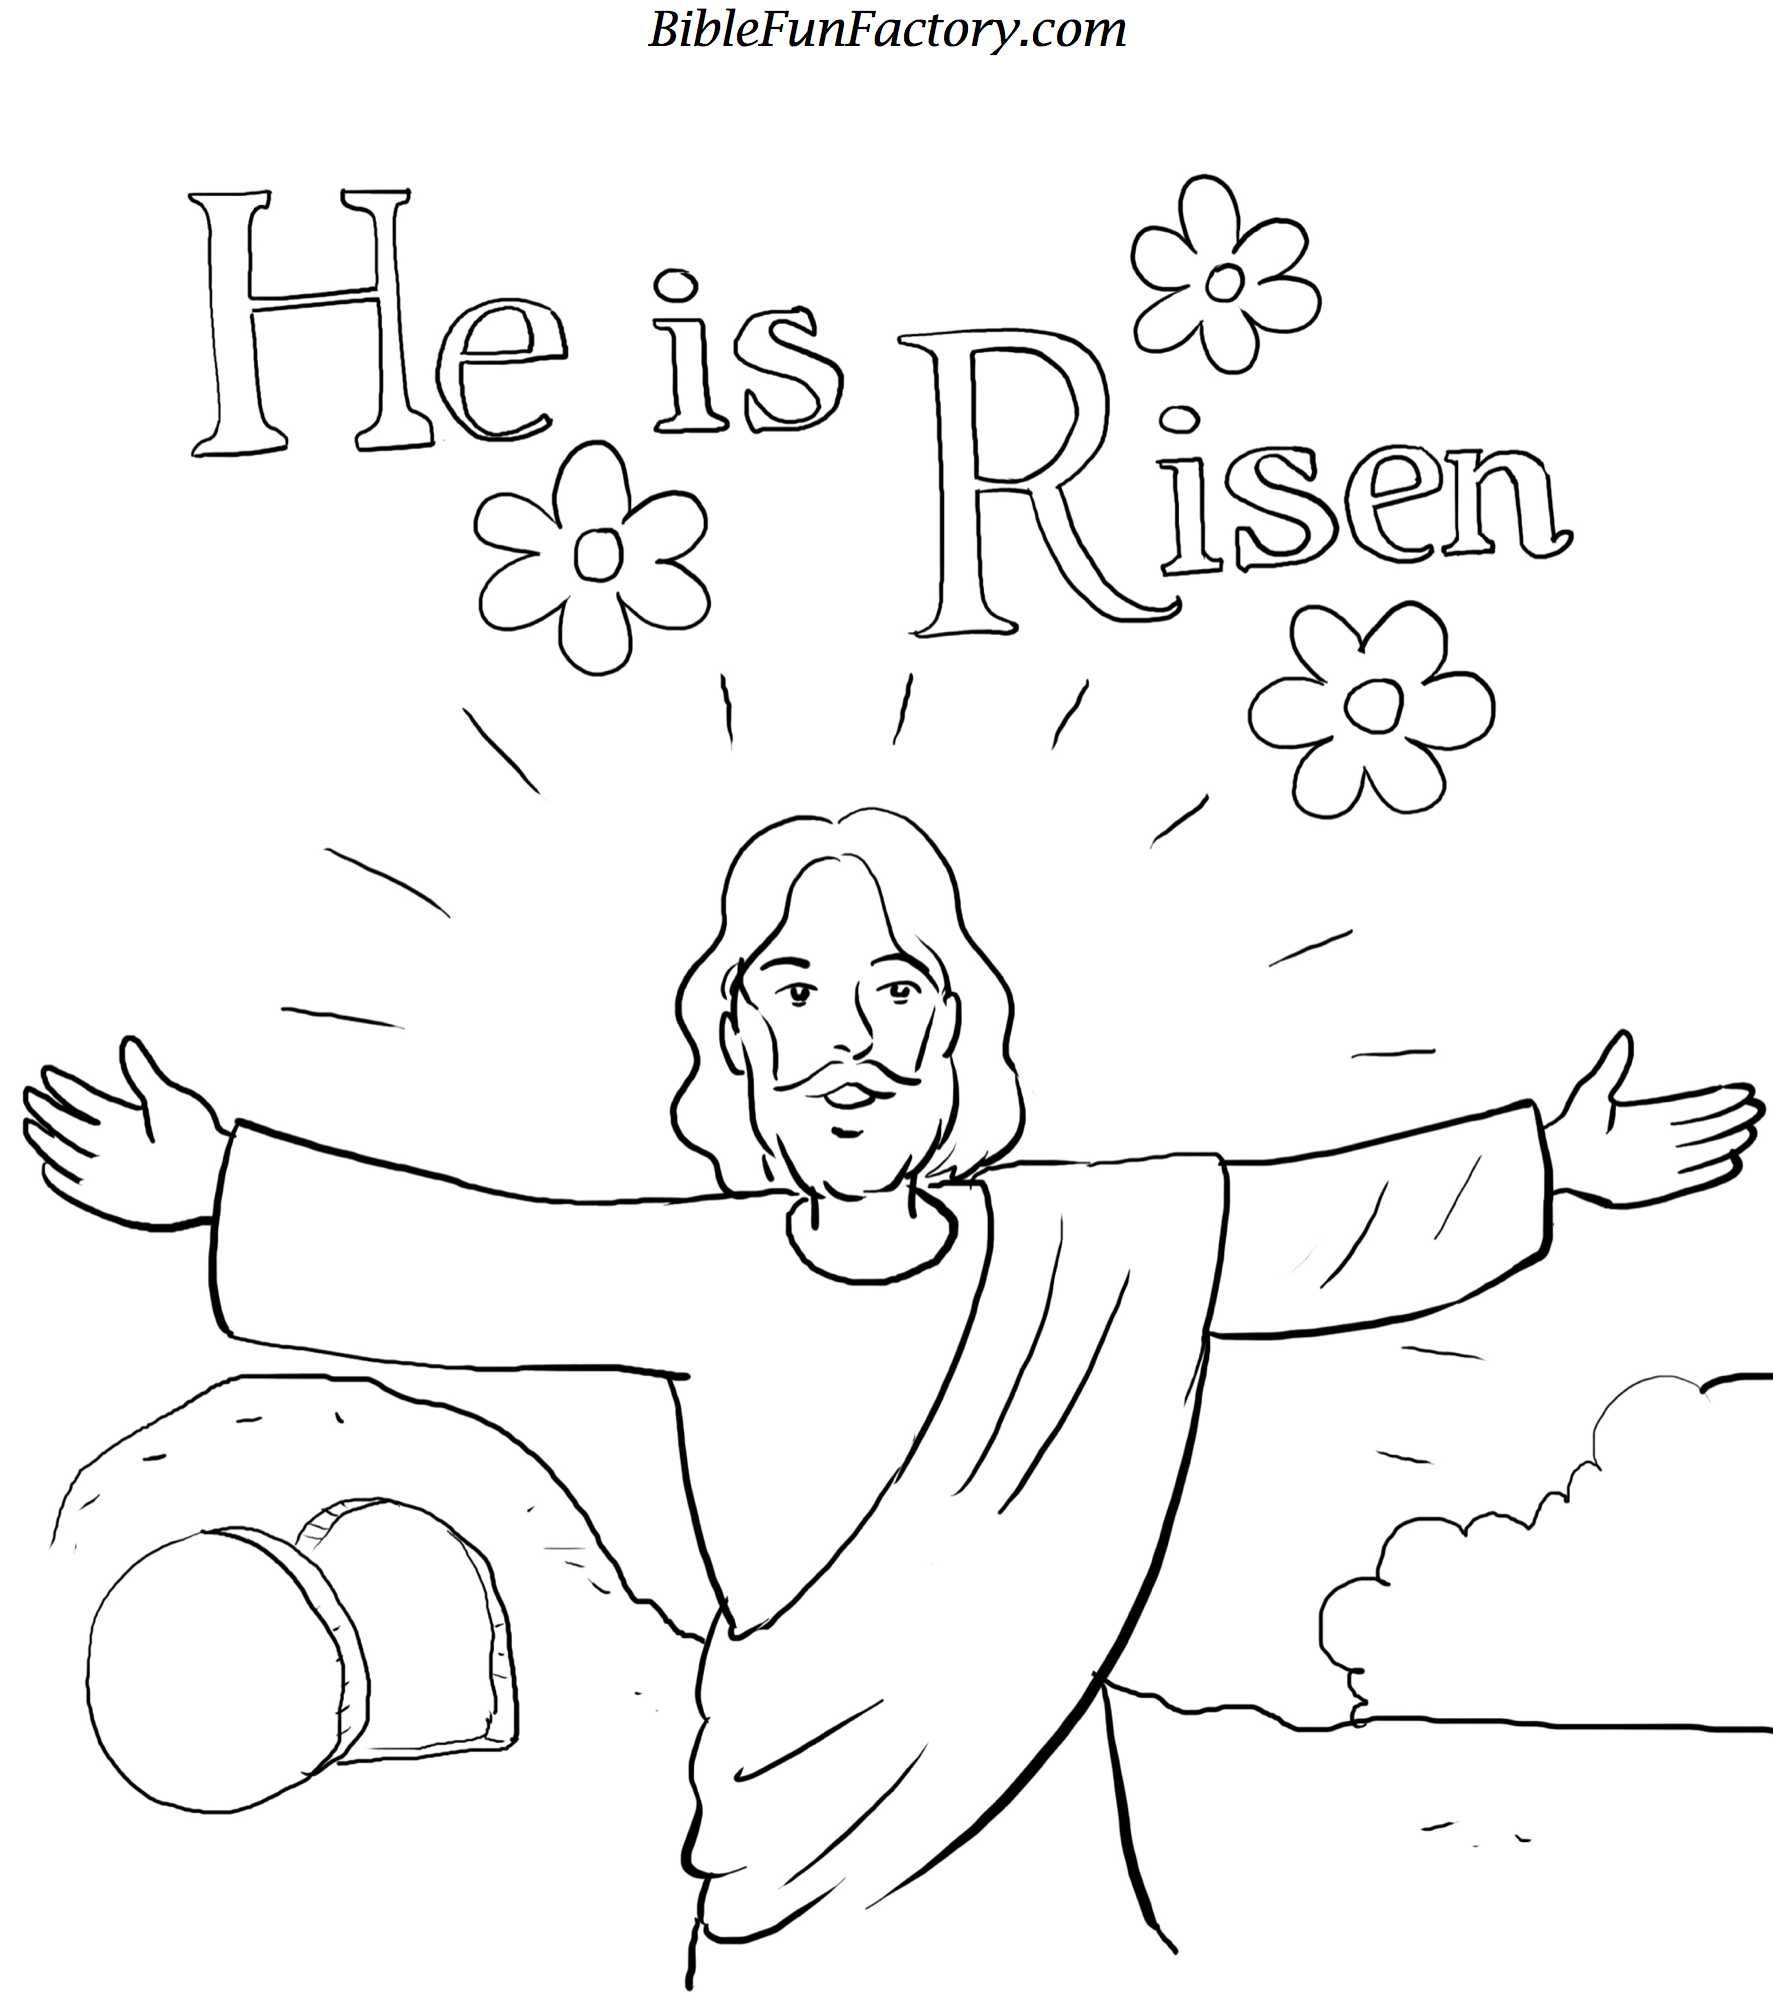 Childrens christian valentine coloring pages - Christian Coloring Pages Crafts Coloring Page